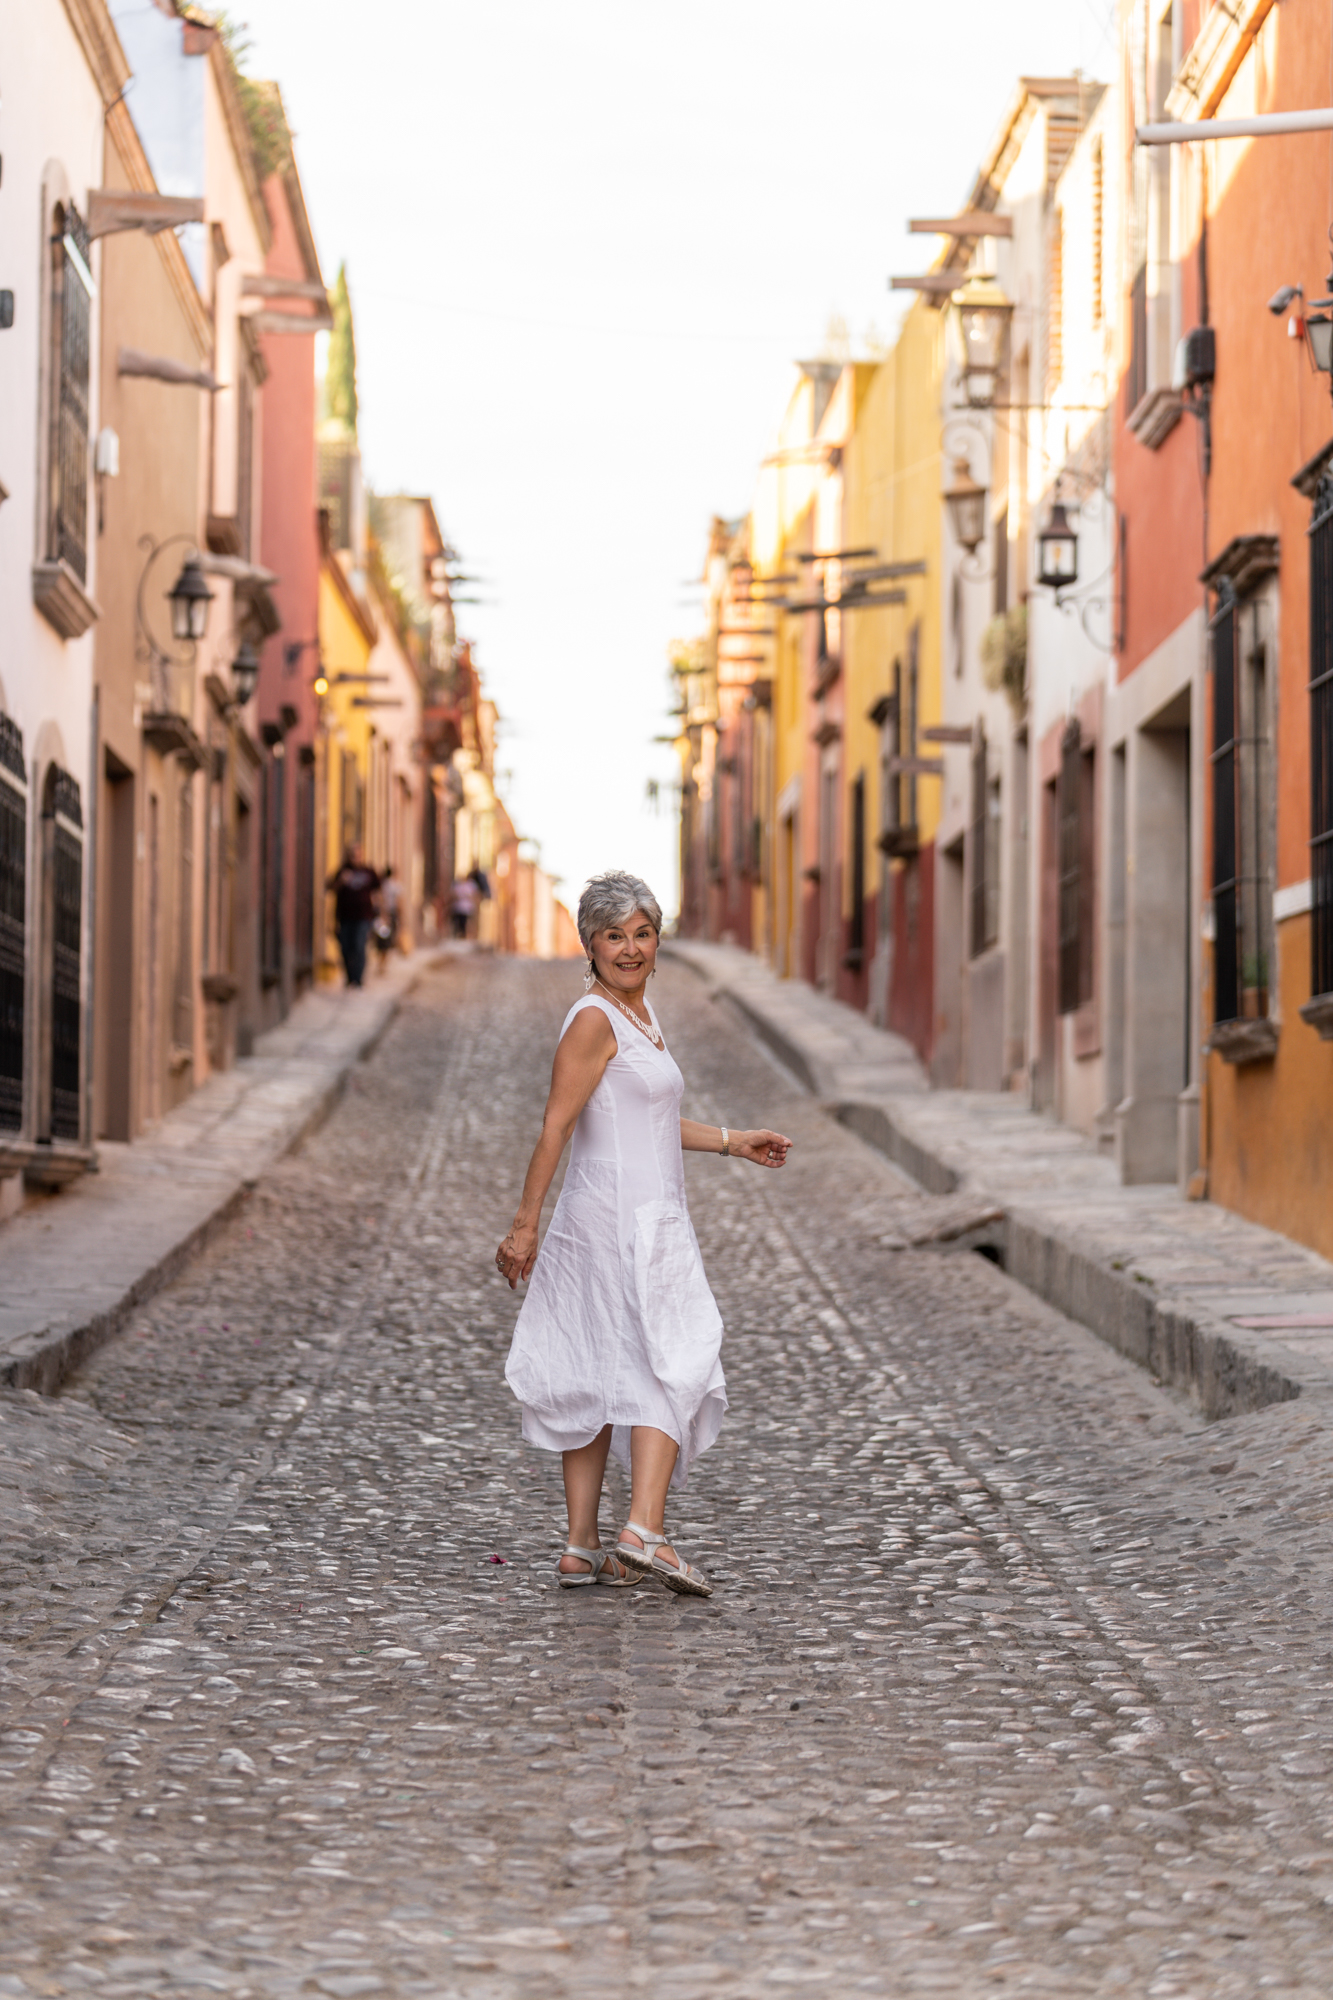 Photoshoot session in San Miguel de Allende with Suzanne and Leo-27.jpg